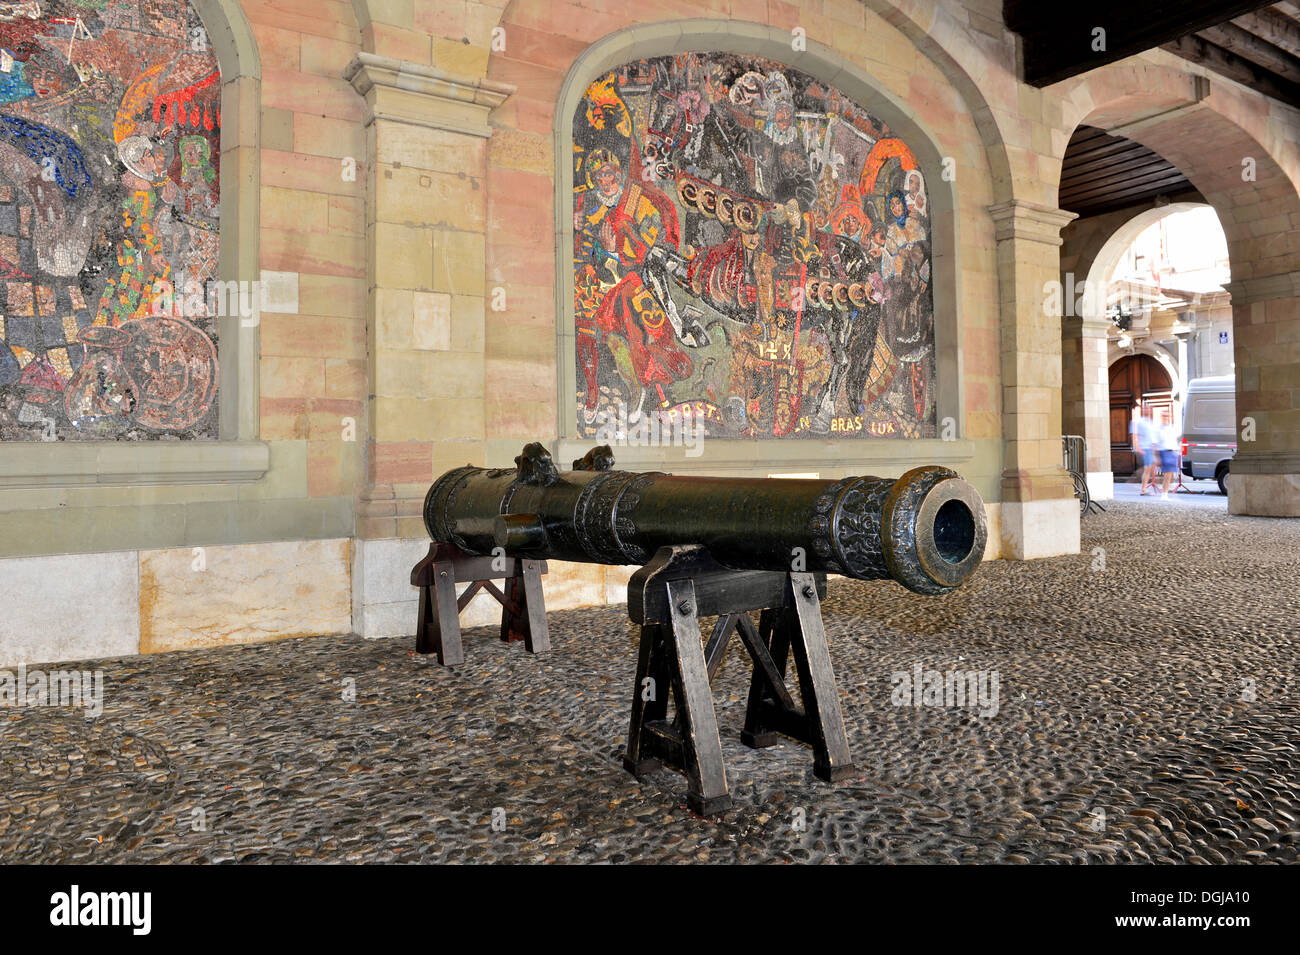 Medieval cannon of the Geneva artillery in the former armoury, in front of a mosaic by Alexandre Cingria depicting Huguenot - Stock Image